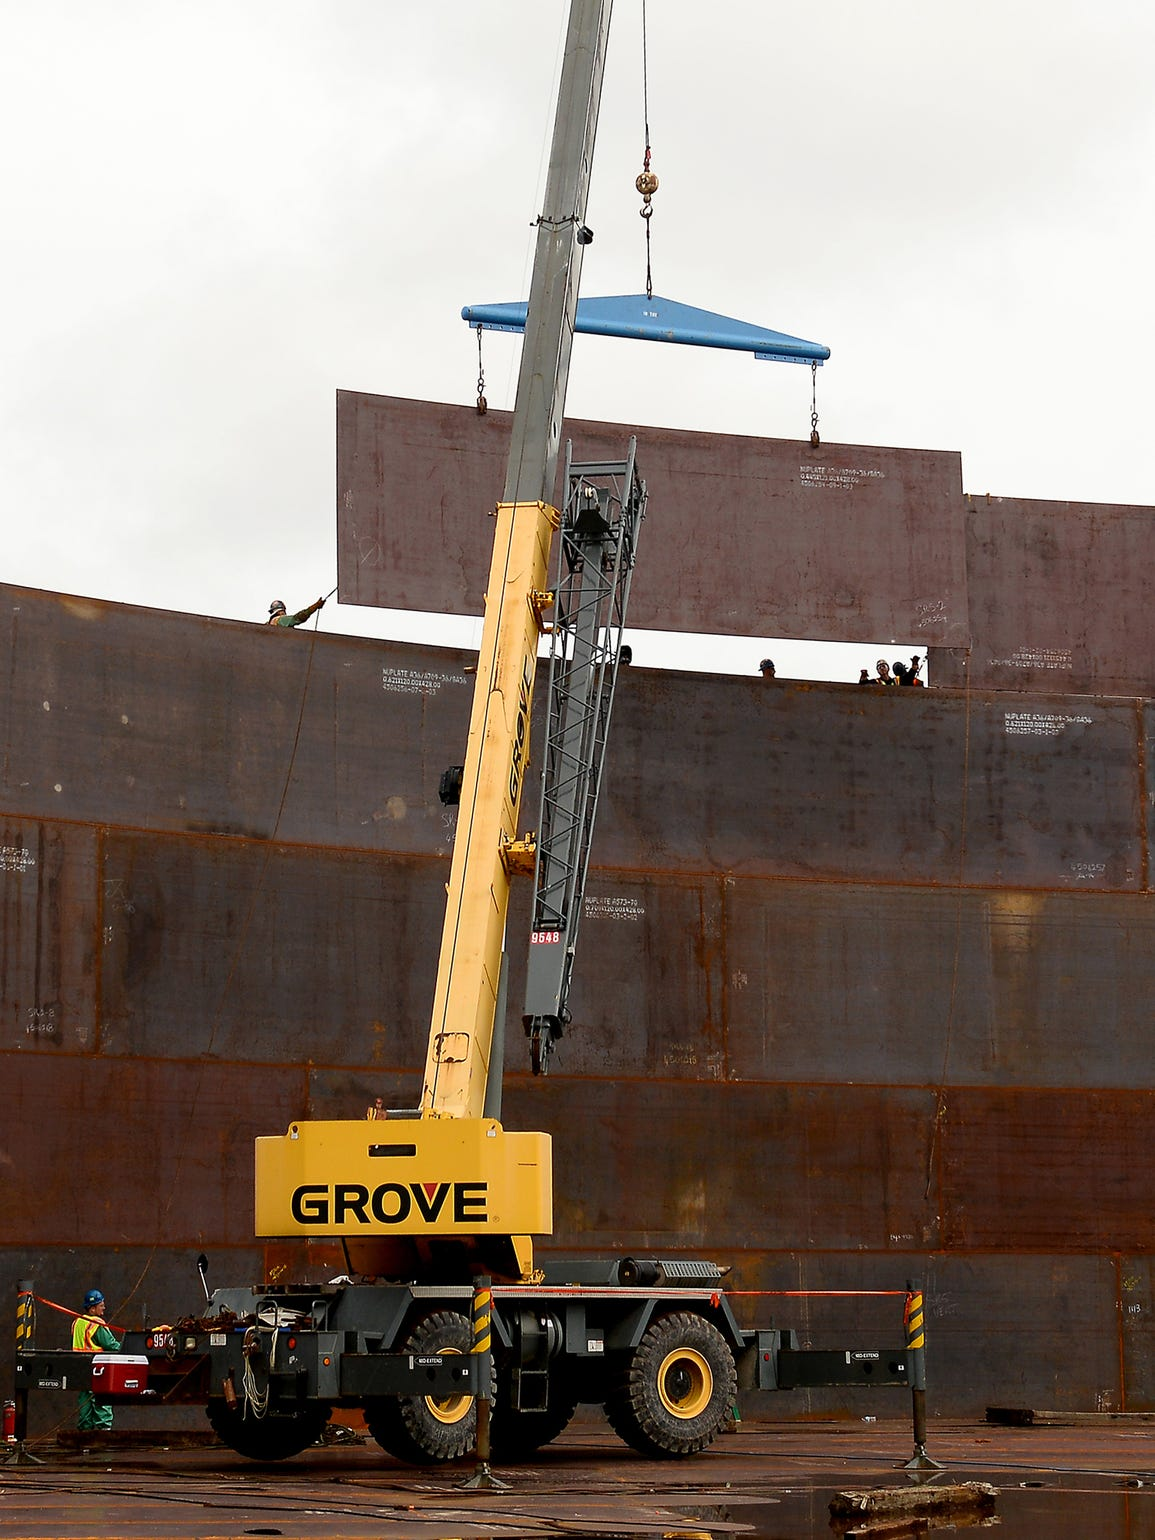 A Crane Lifts Up A Steel Plate And Workers Maneuver Enbridge Sidesteps  Zoning For Stockbridge Tank